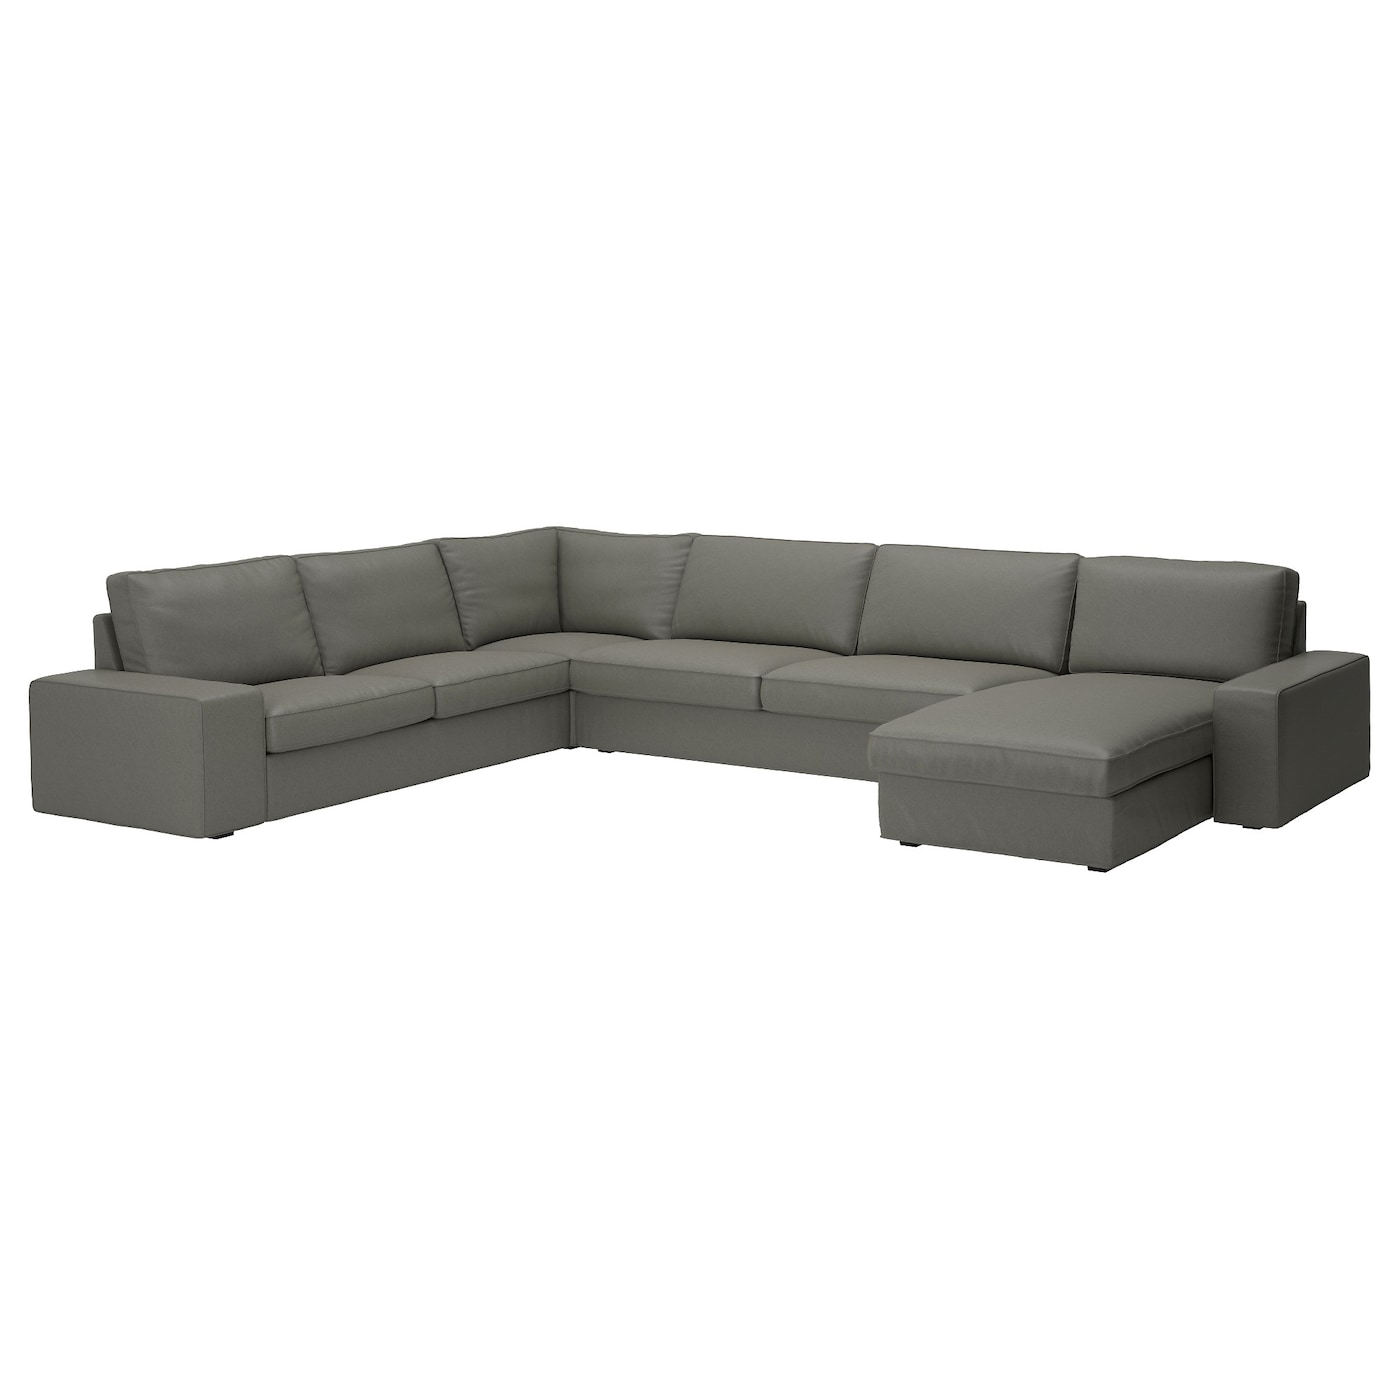 Kivik corner sofa 23 32 and chaise longue borred grey green ikea - Chaise longue jardin ikea ...